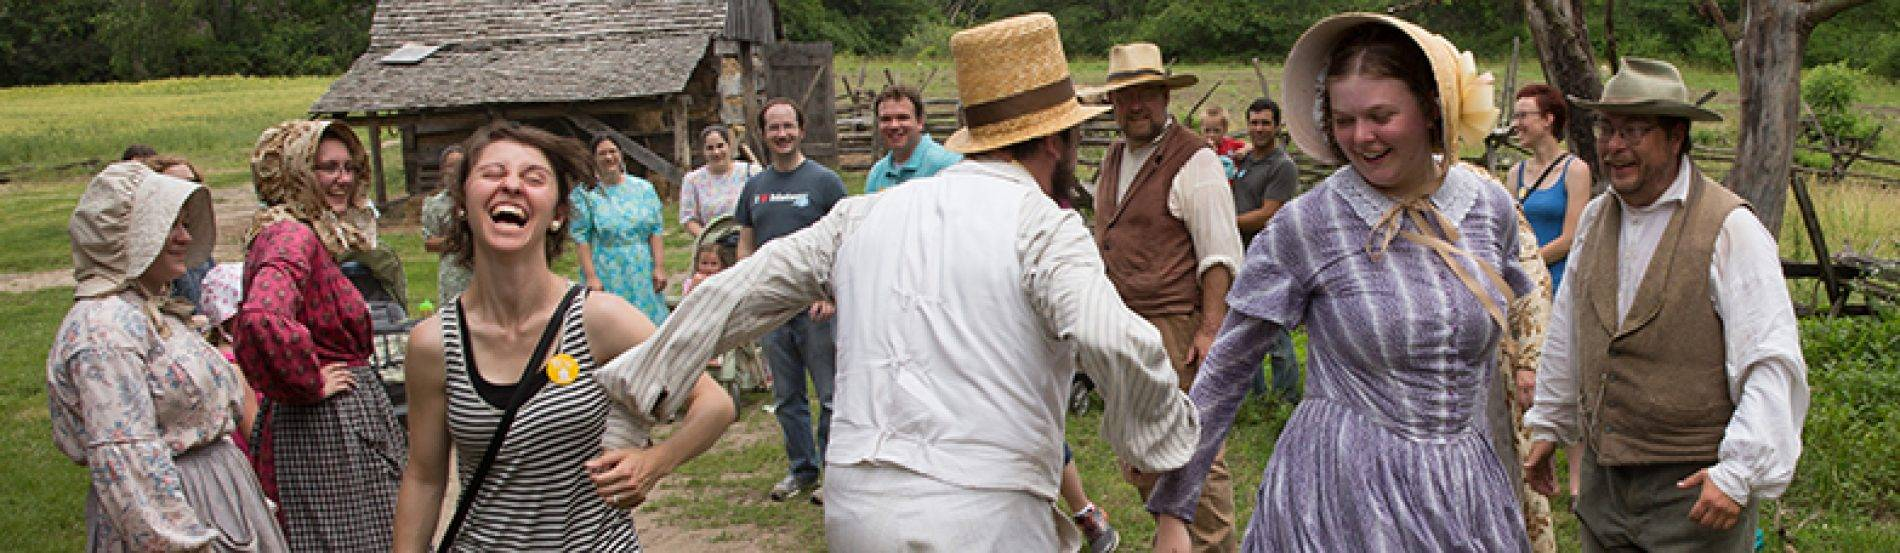 guests and interpreters dance at 1850 pioneer farm